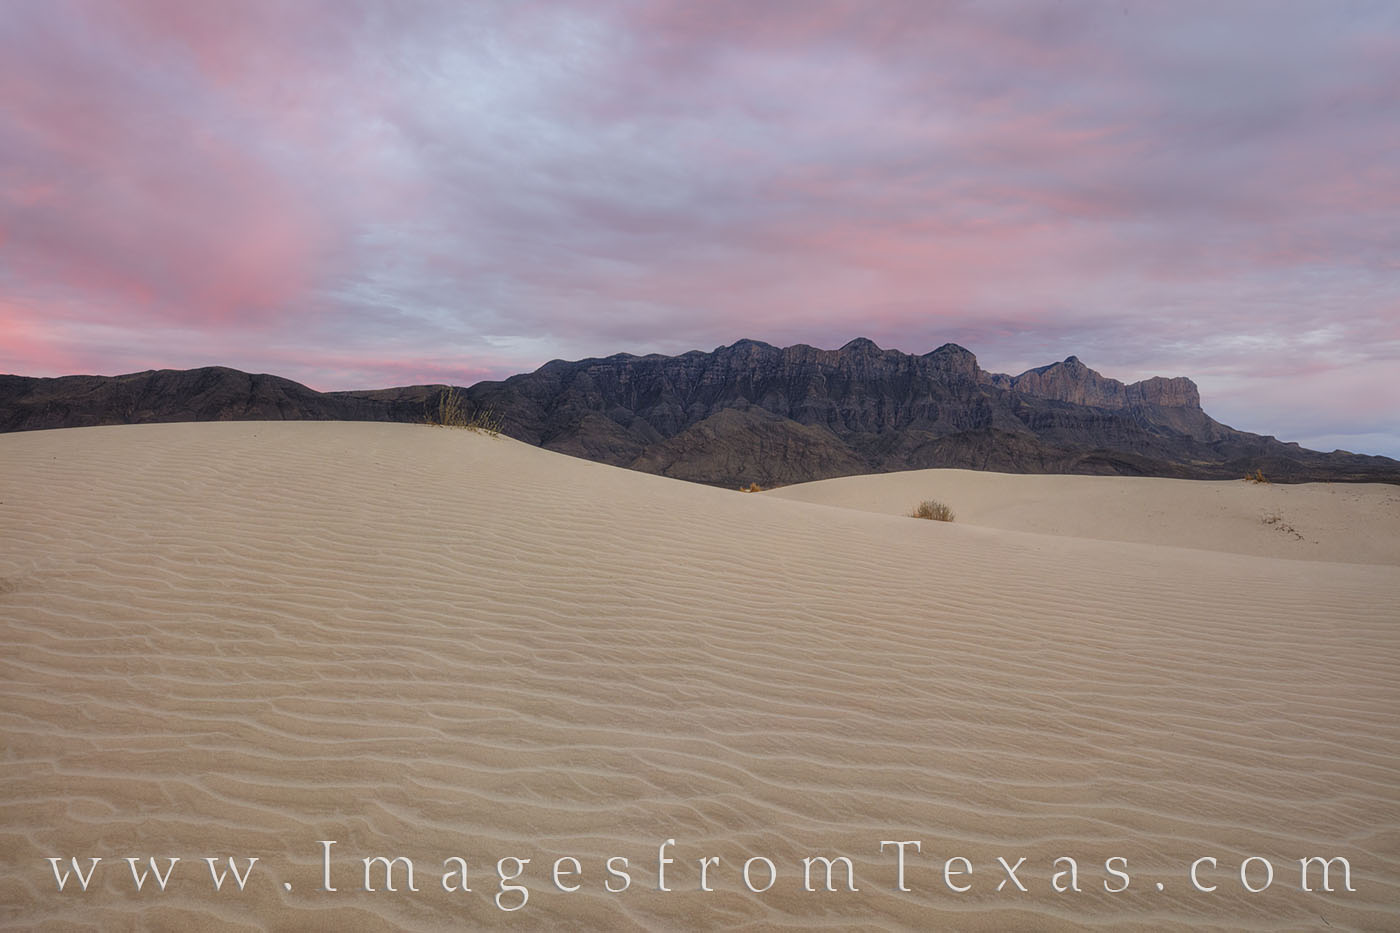 sand dunes, salt basin, salt dunes, guadalupe mountains, guadalupe peak, el capitan, national park, texas national park, highest point in texas, texas peaks, texas landscapes, texas sand, photo